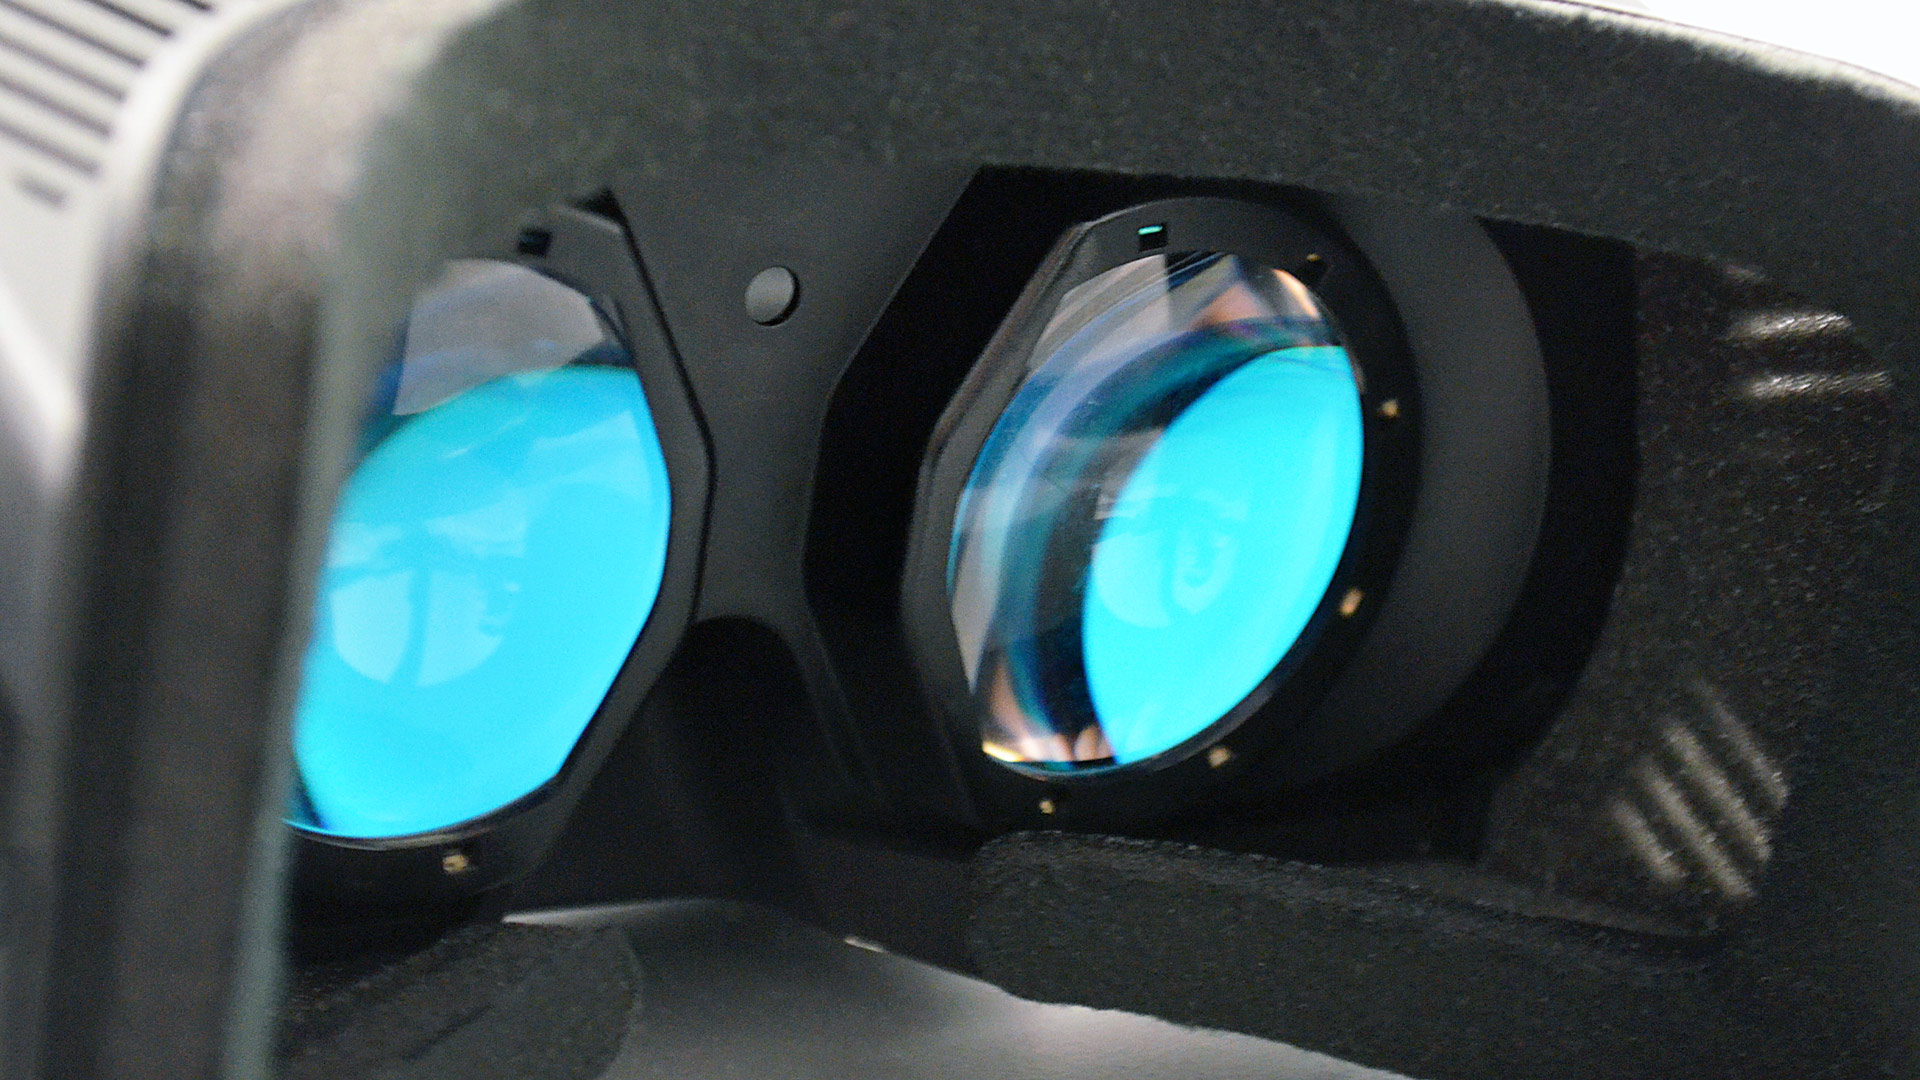 8 Reasons Why Eye-tracking is a Game Changer for VR